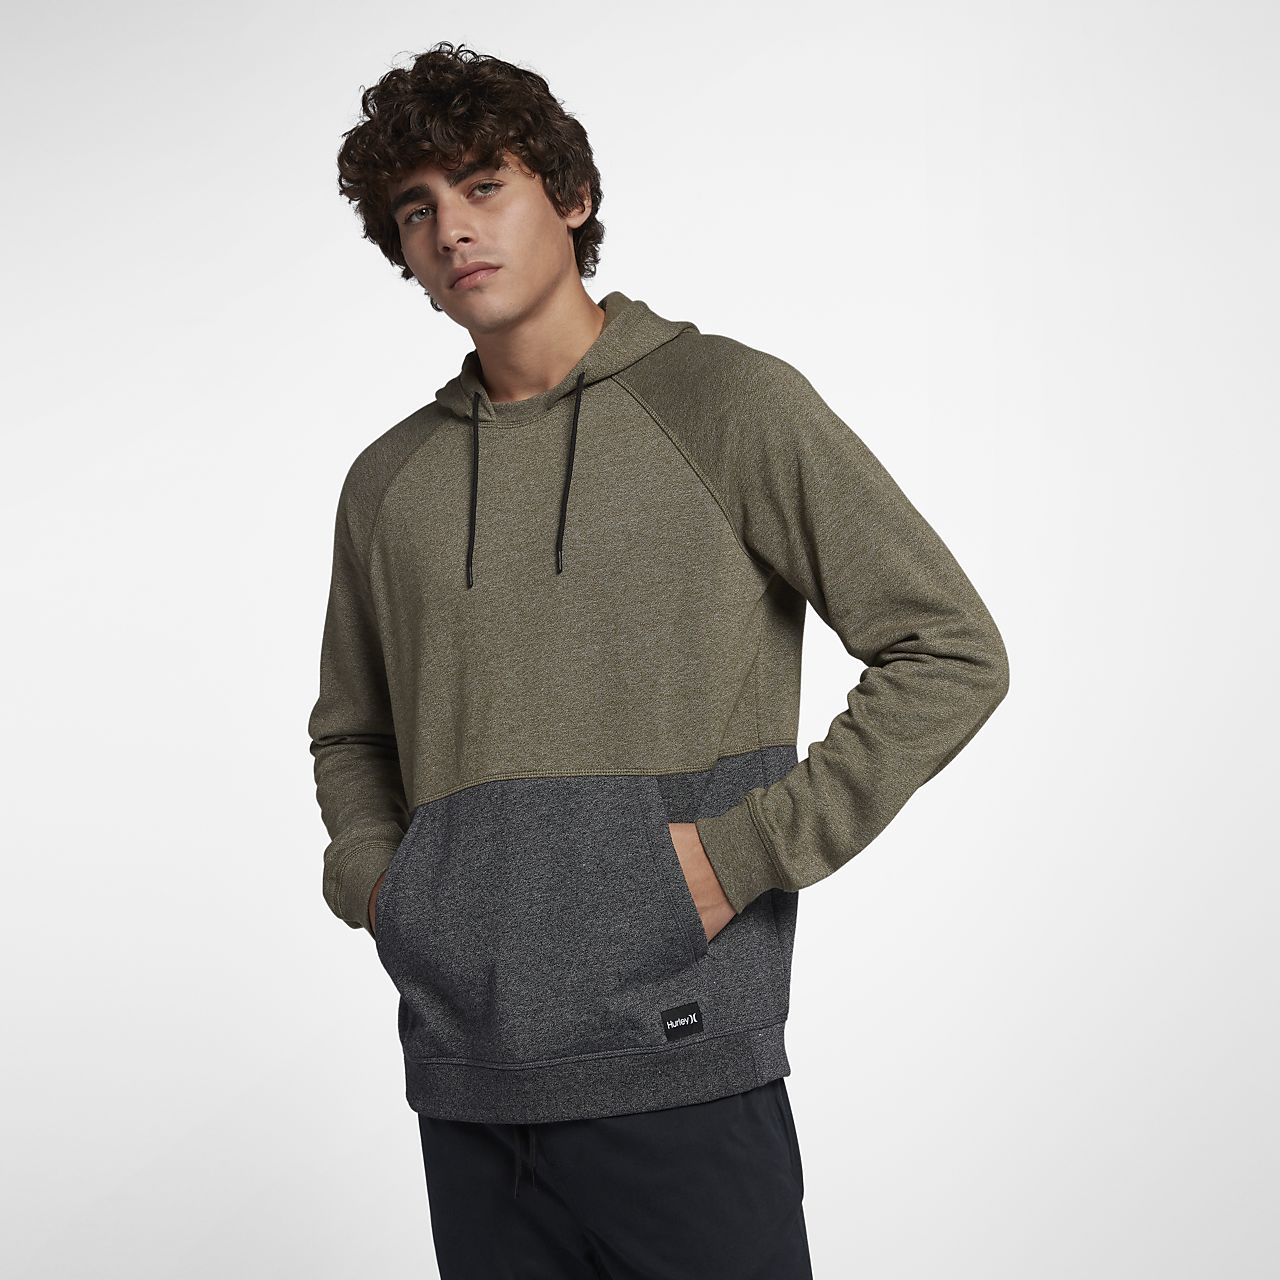 Pour Pullover Blocked Homme Capuche Ch Crone Sweat Hurley À xZqnYXwWaz